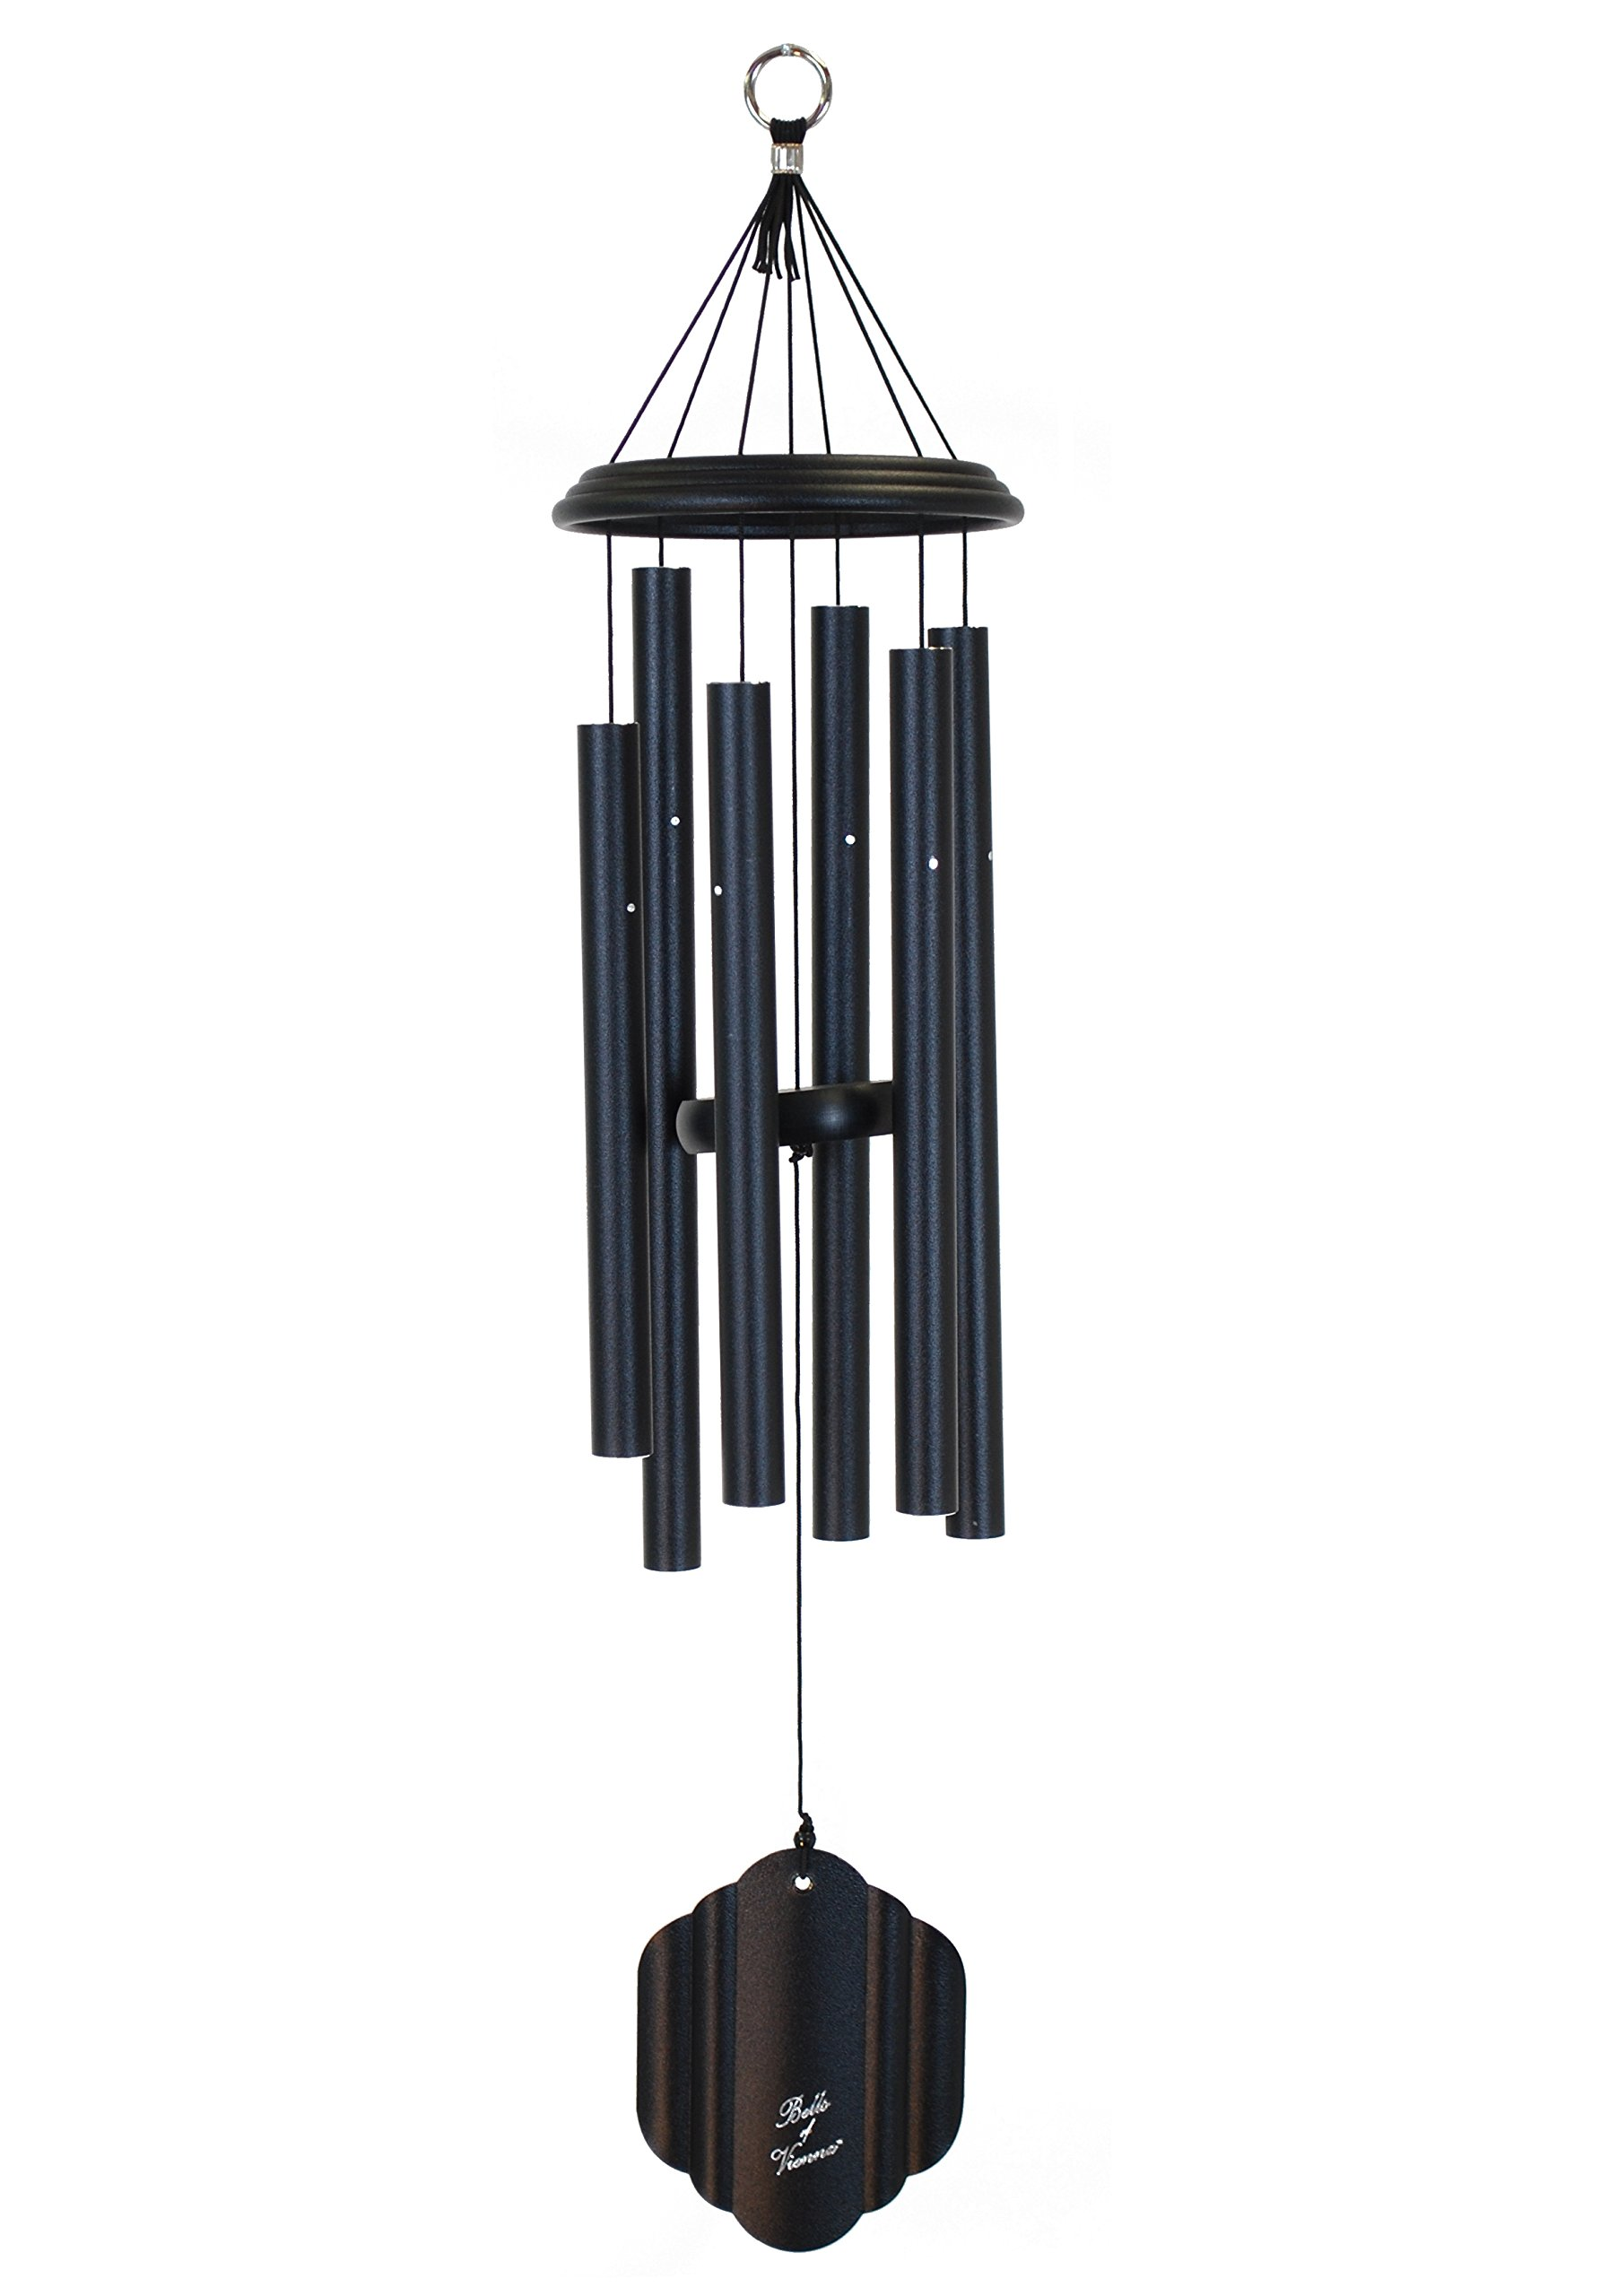 Bells of Vienna 29-inch Windchime, Black